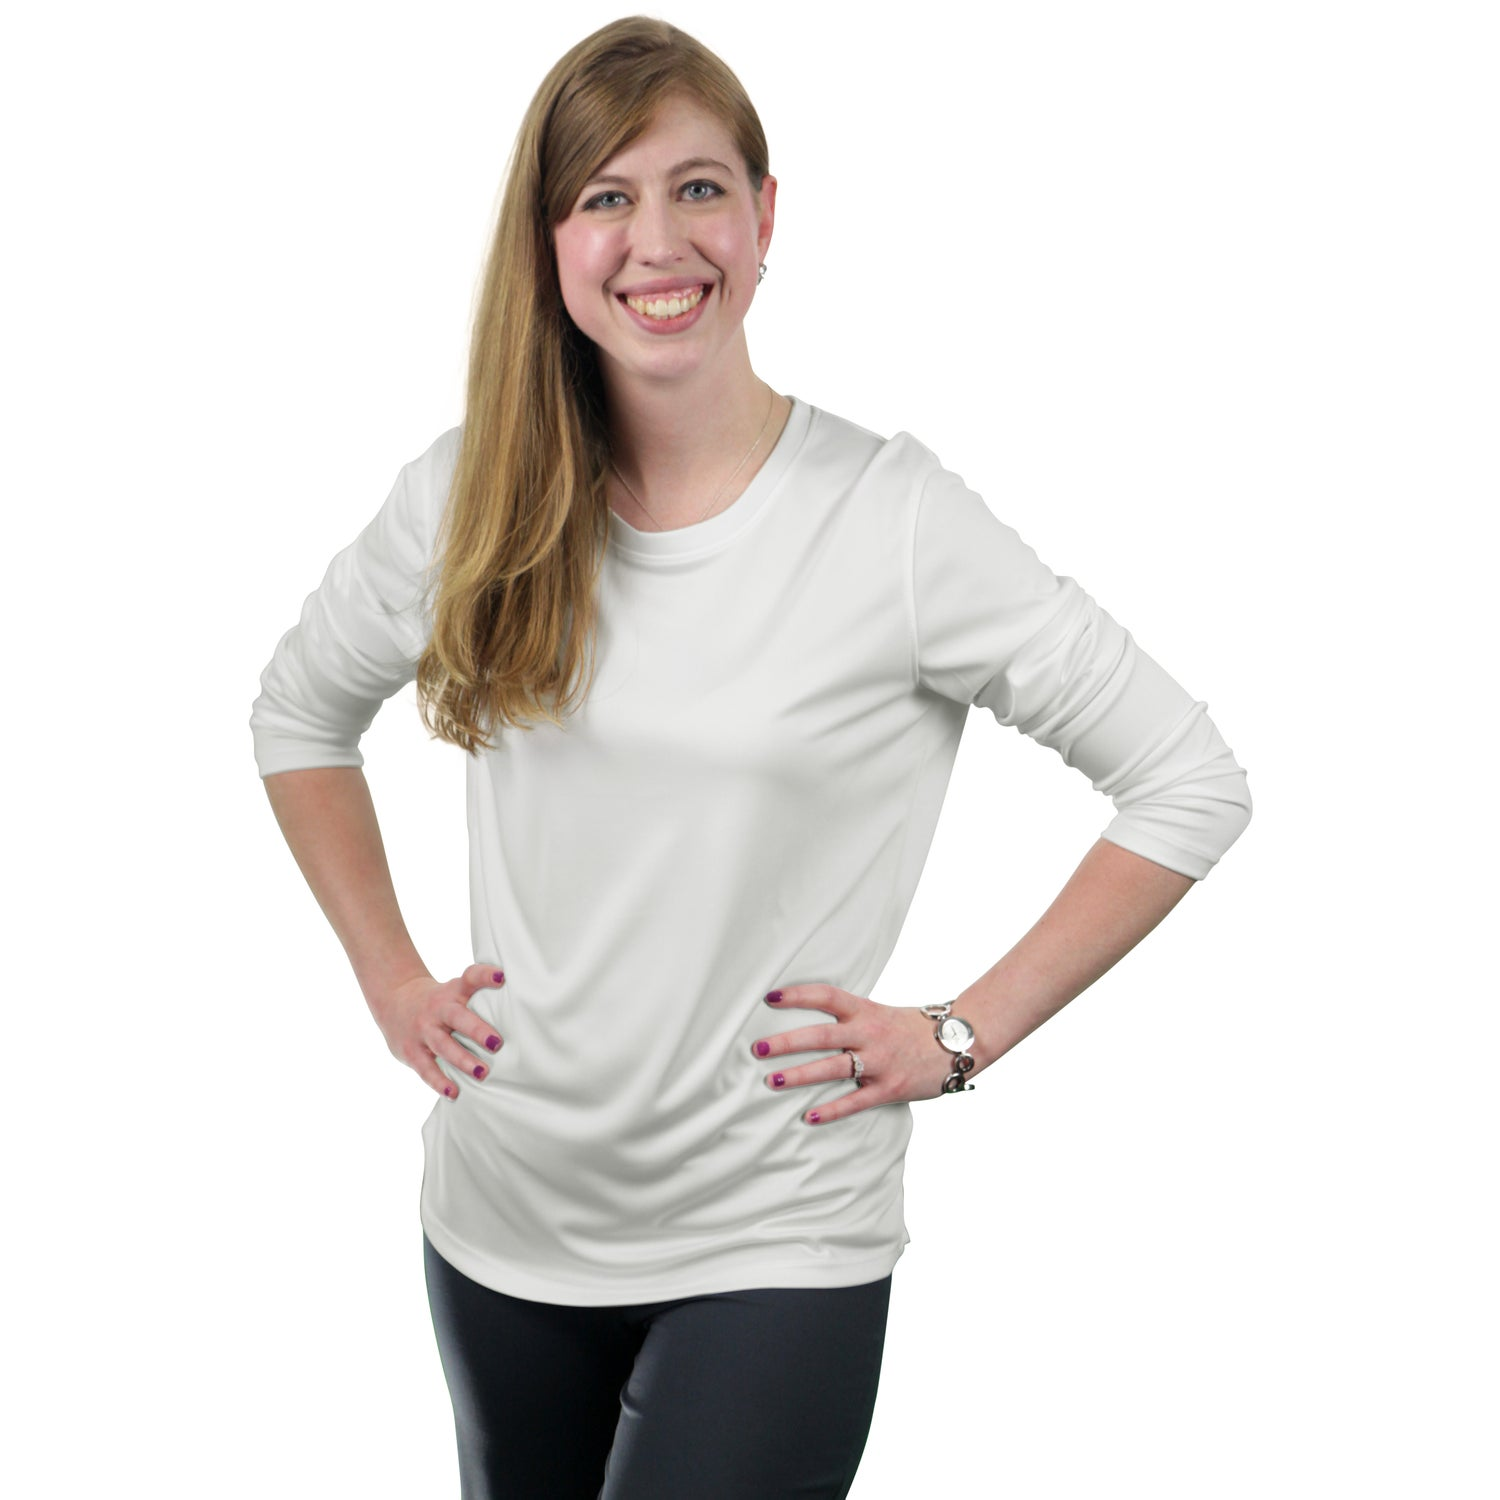 Parima long sleeve tech tee shirt by trimark women 39 s for Personalized long sleeve t shirts